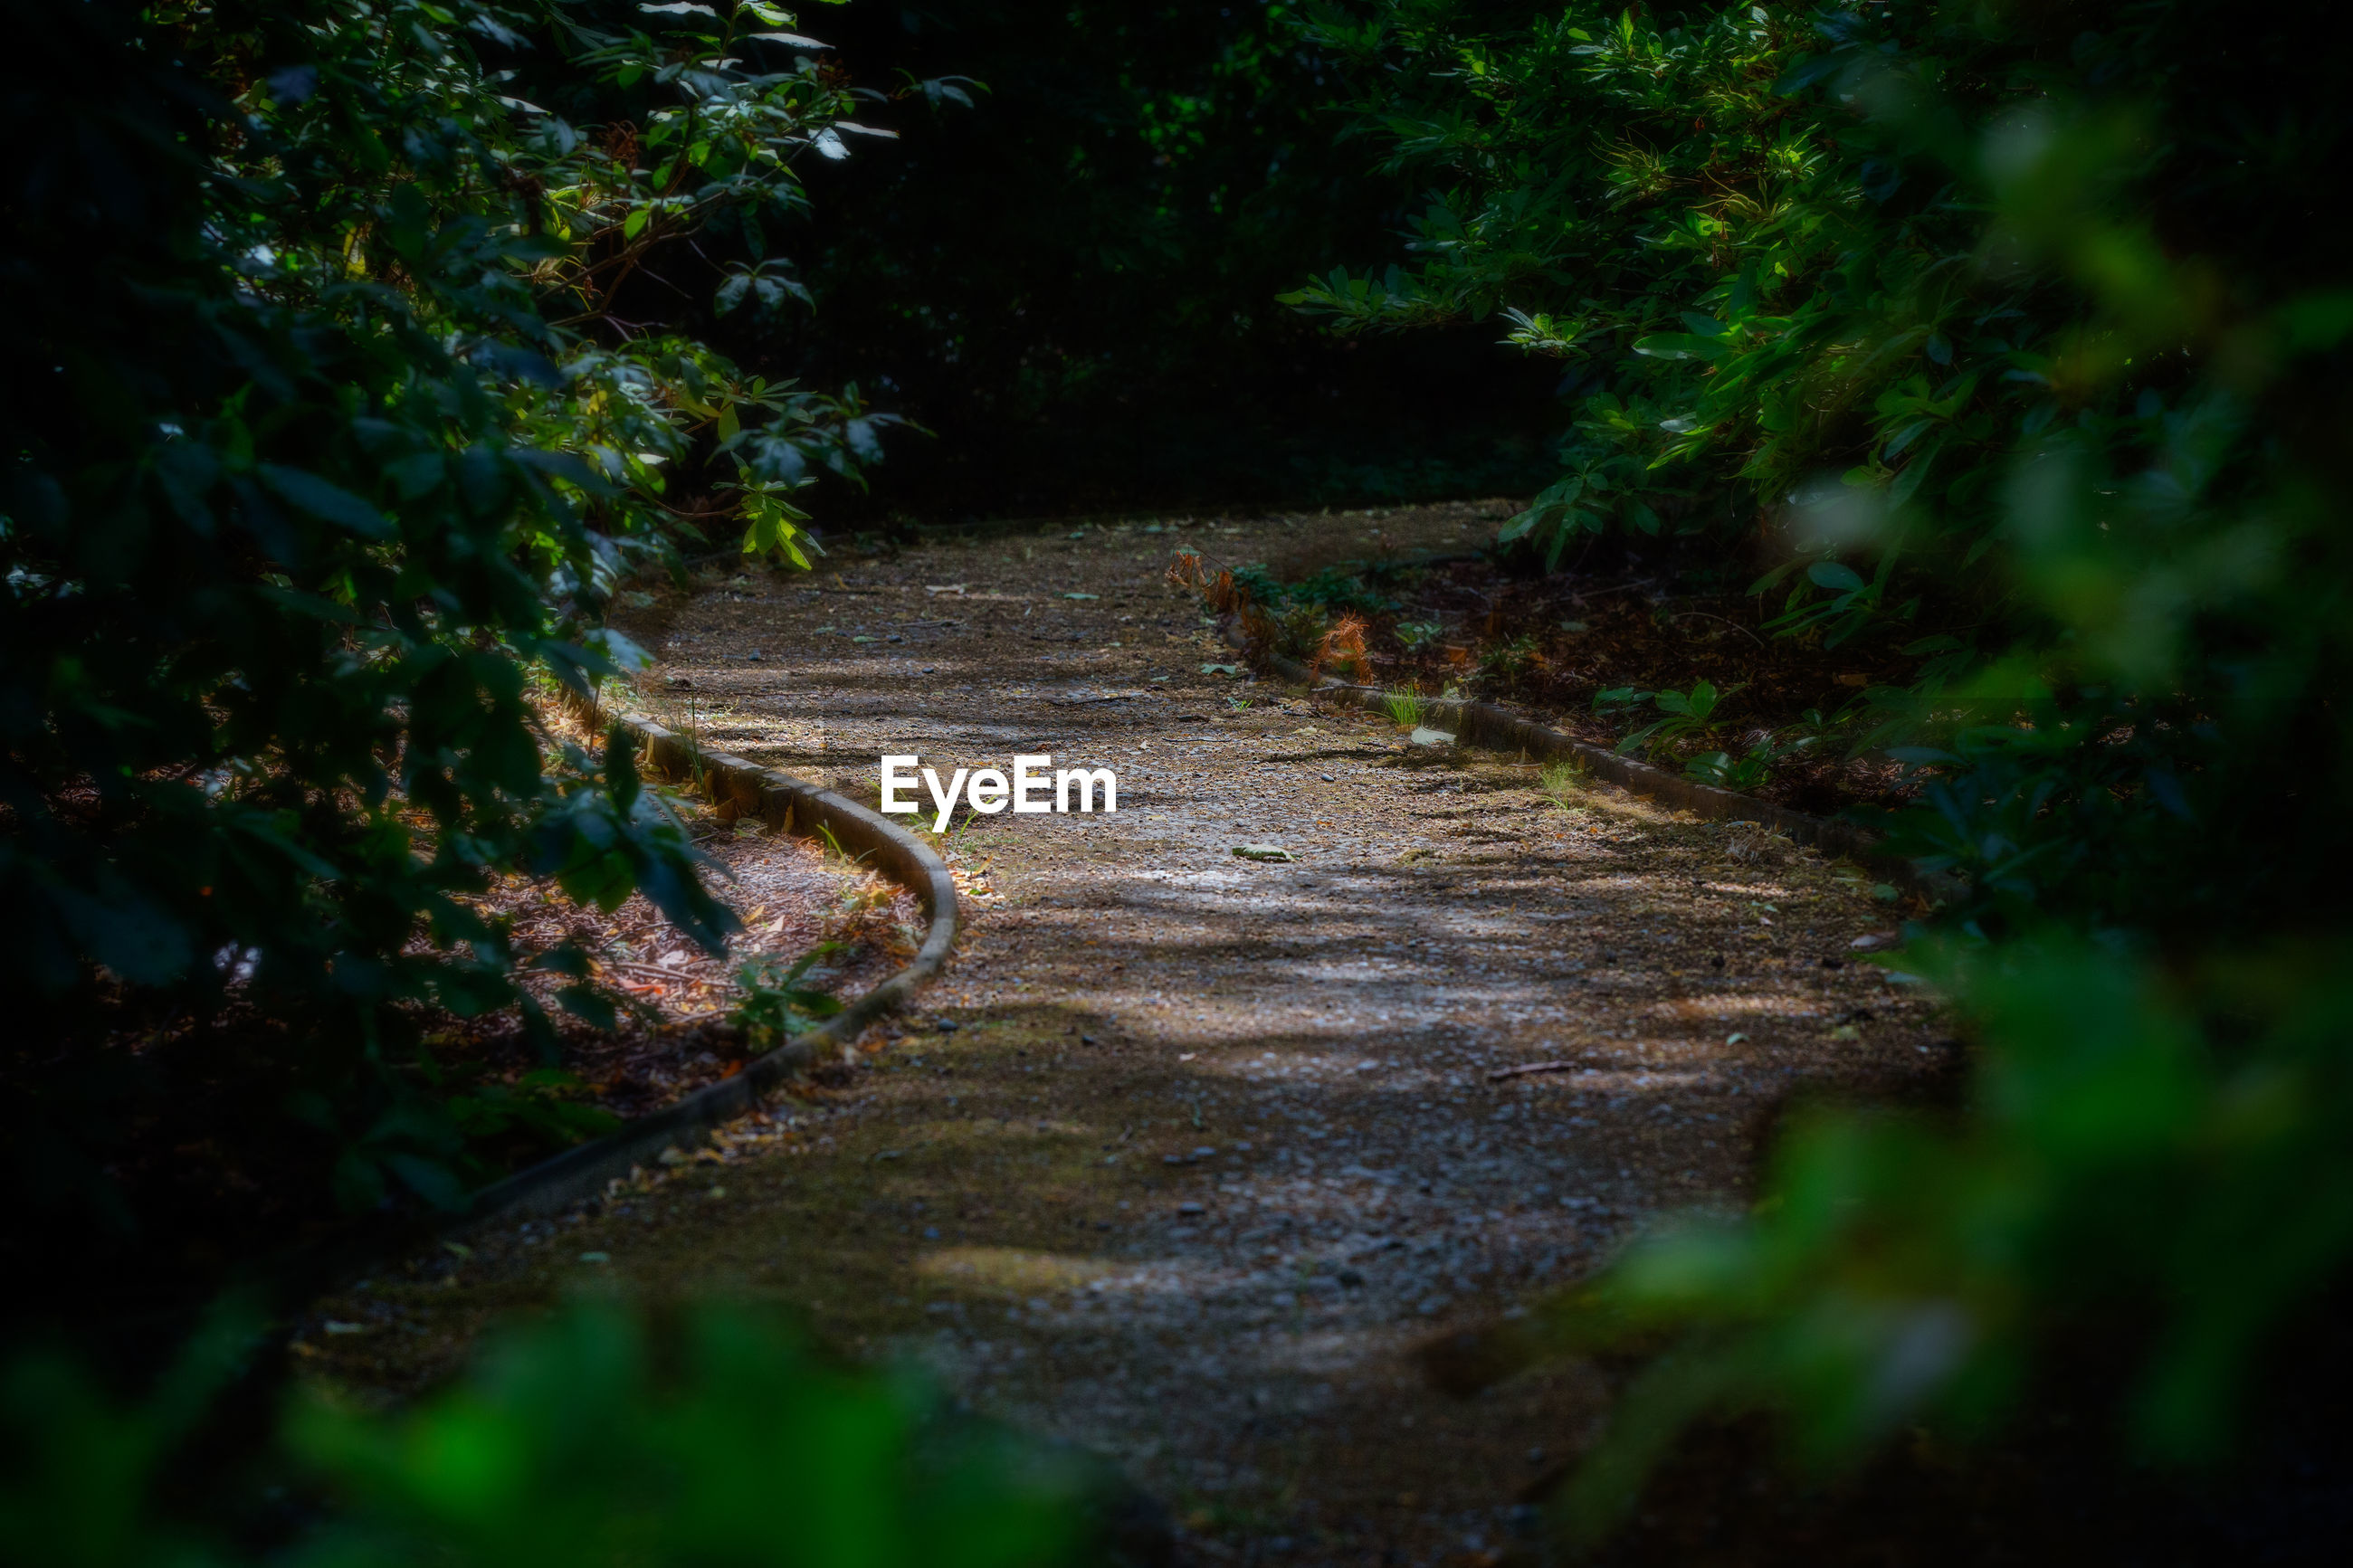 Pathway amidst trees in forest